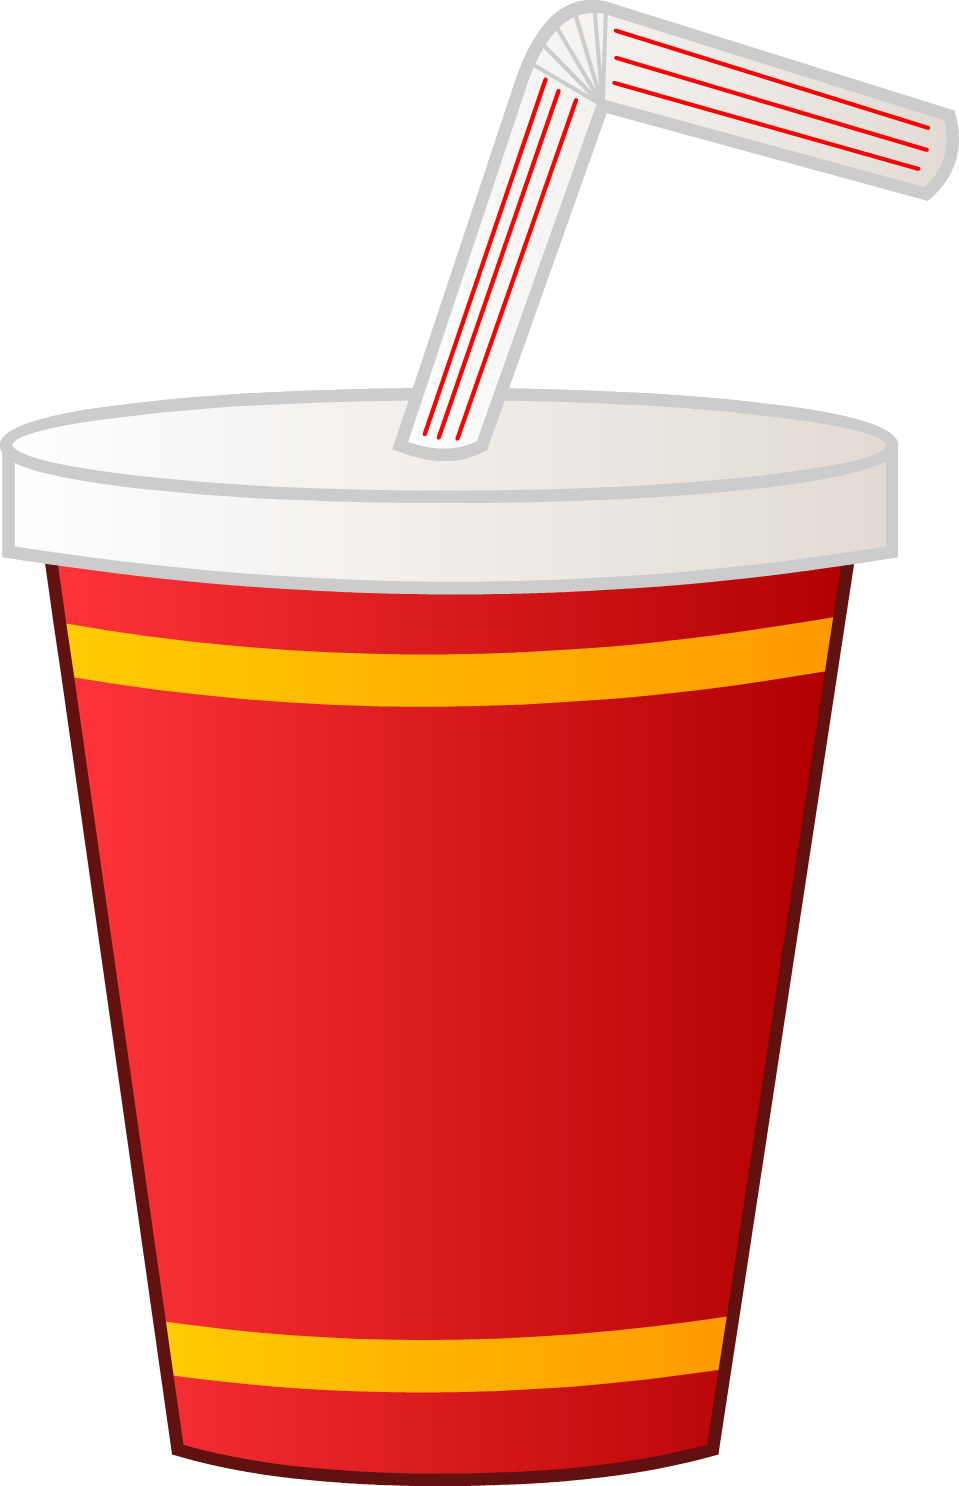 Soda Great Cliparts For Free Clipart Glass And Use In This ... png royalty free stock